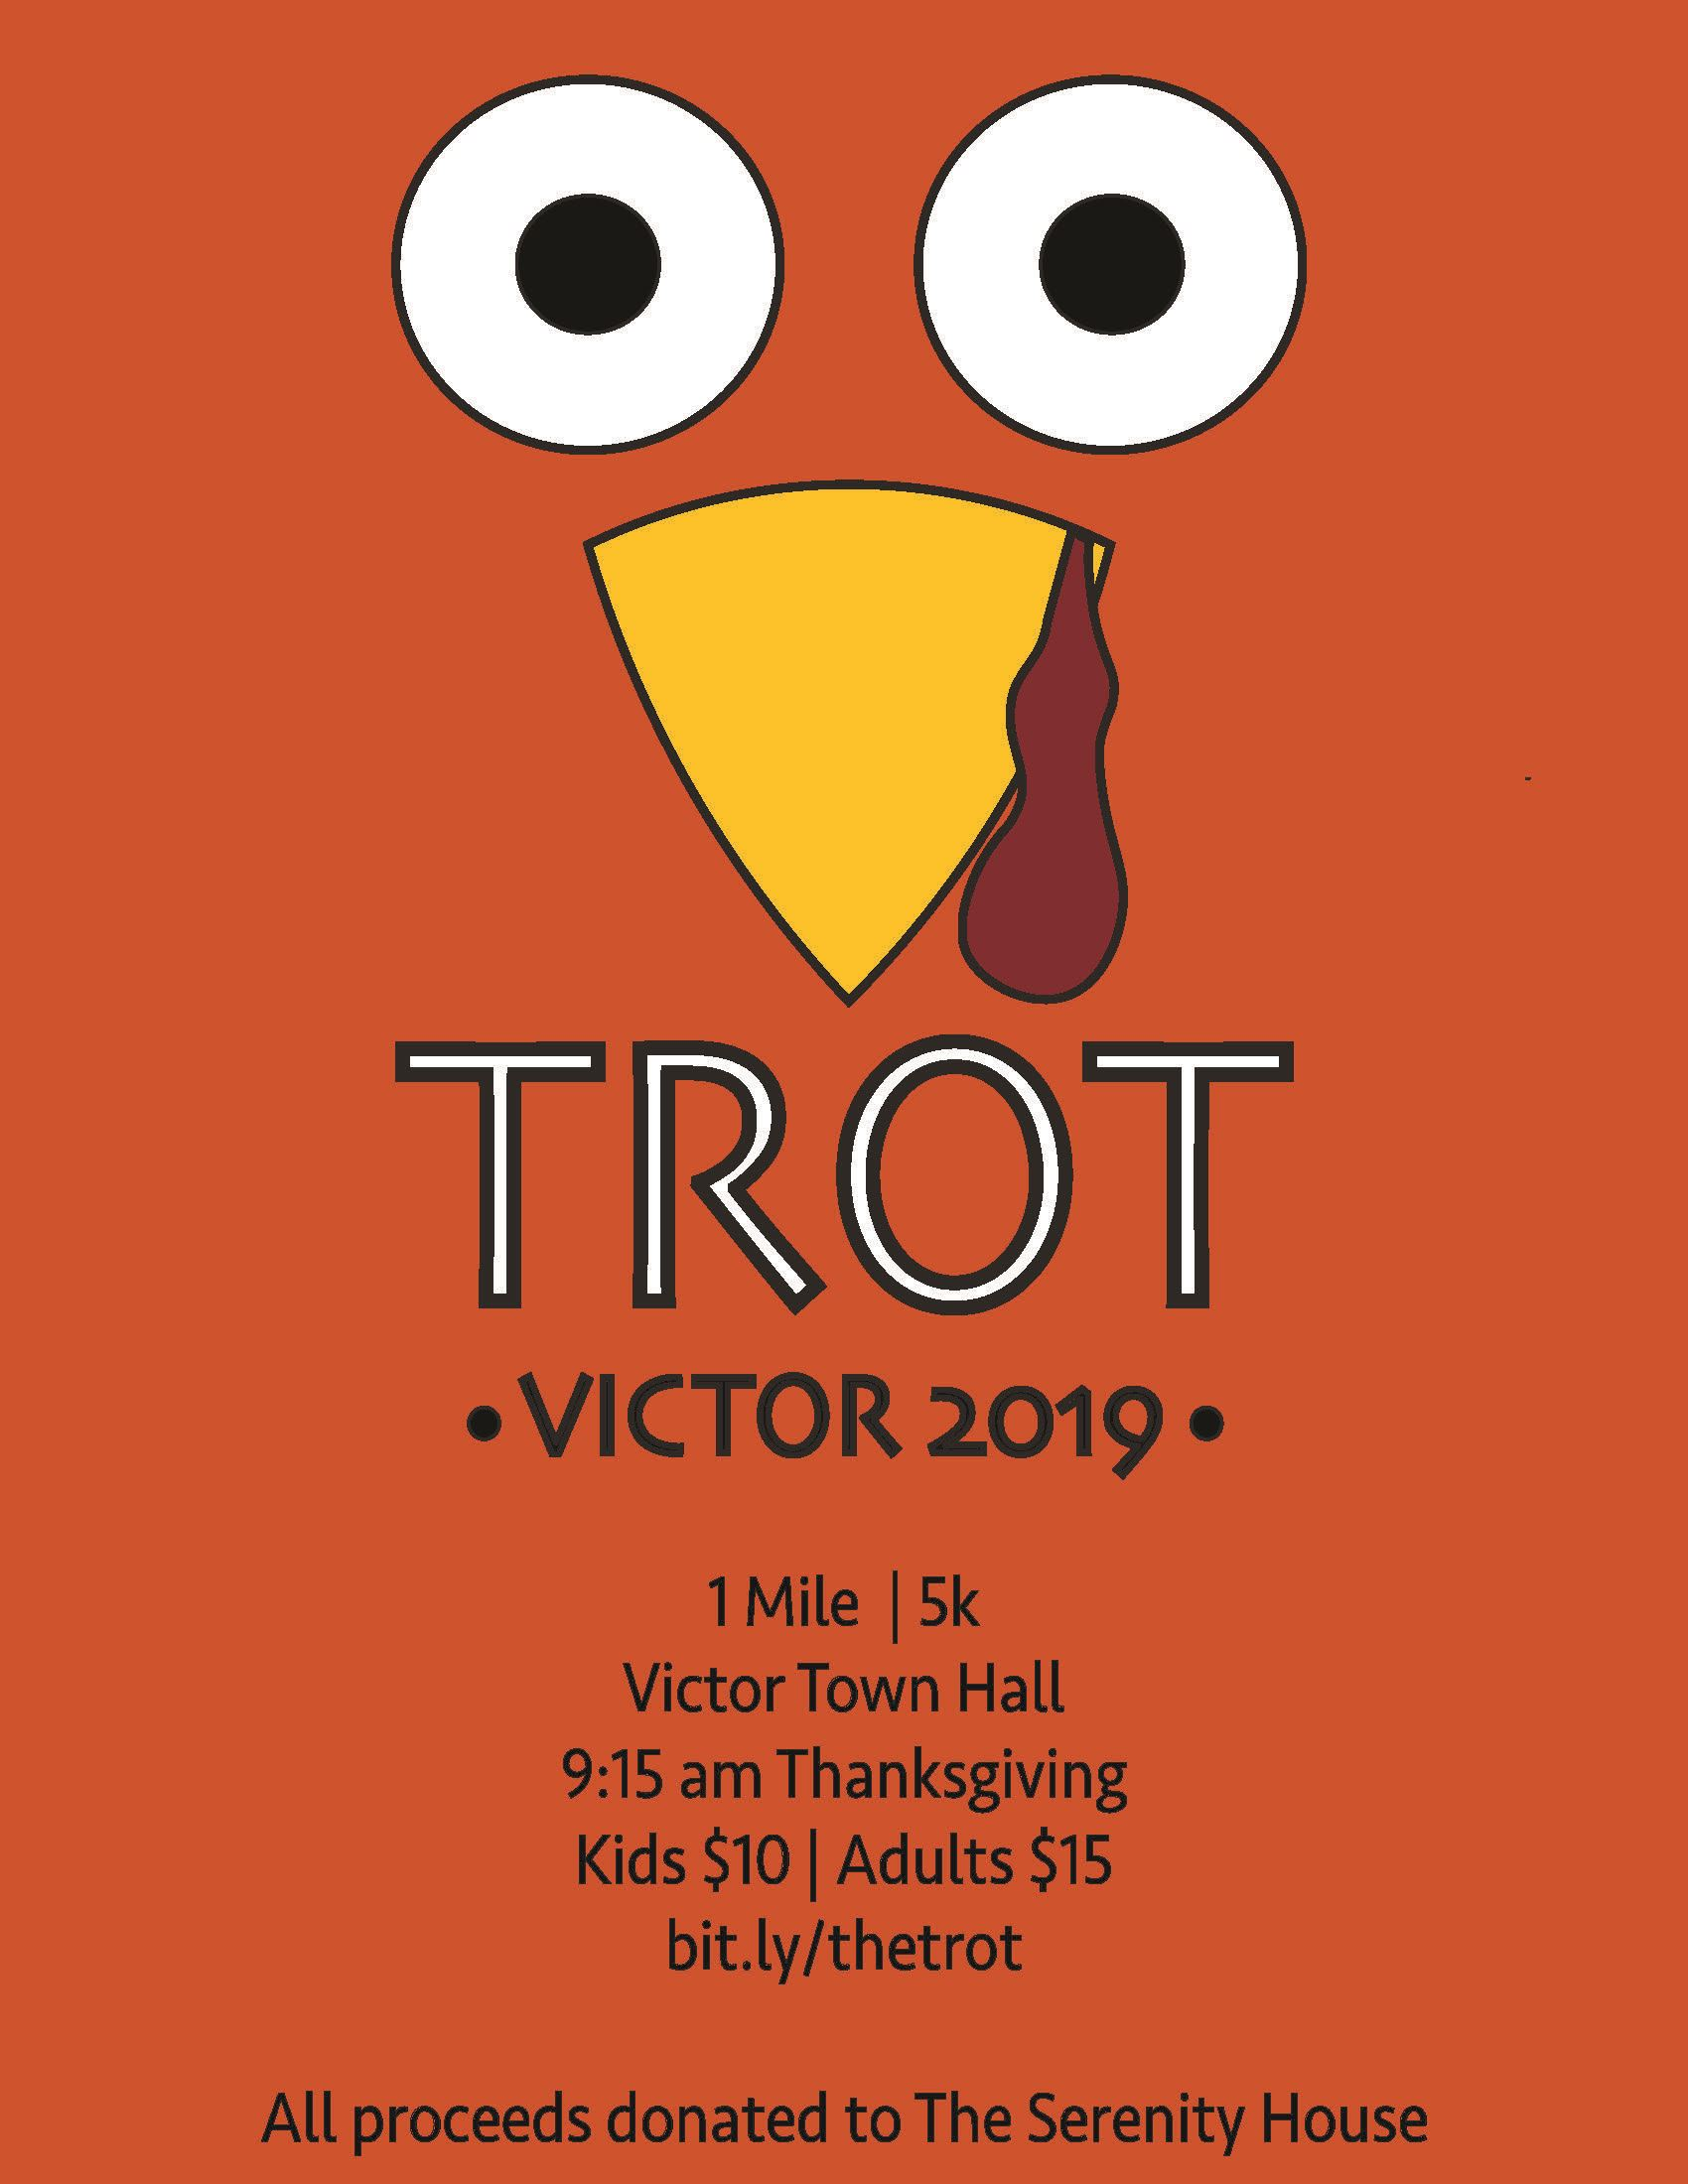 Turkey Trot 5K flyer orange background with two eyes and turkey beak